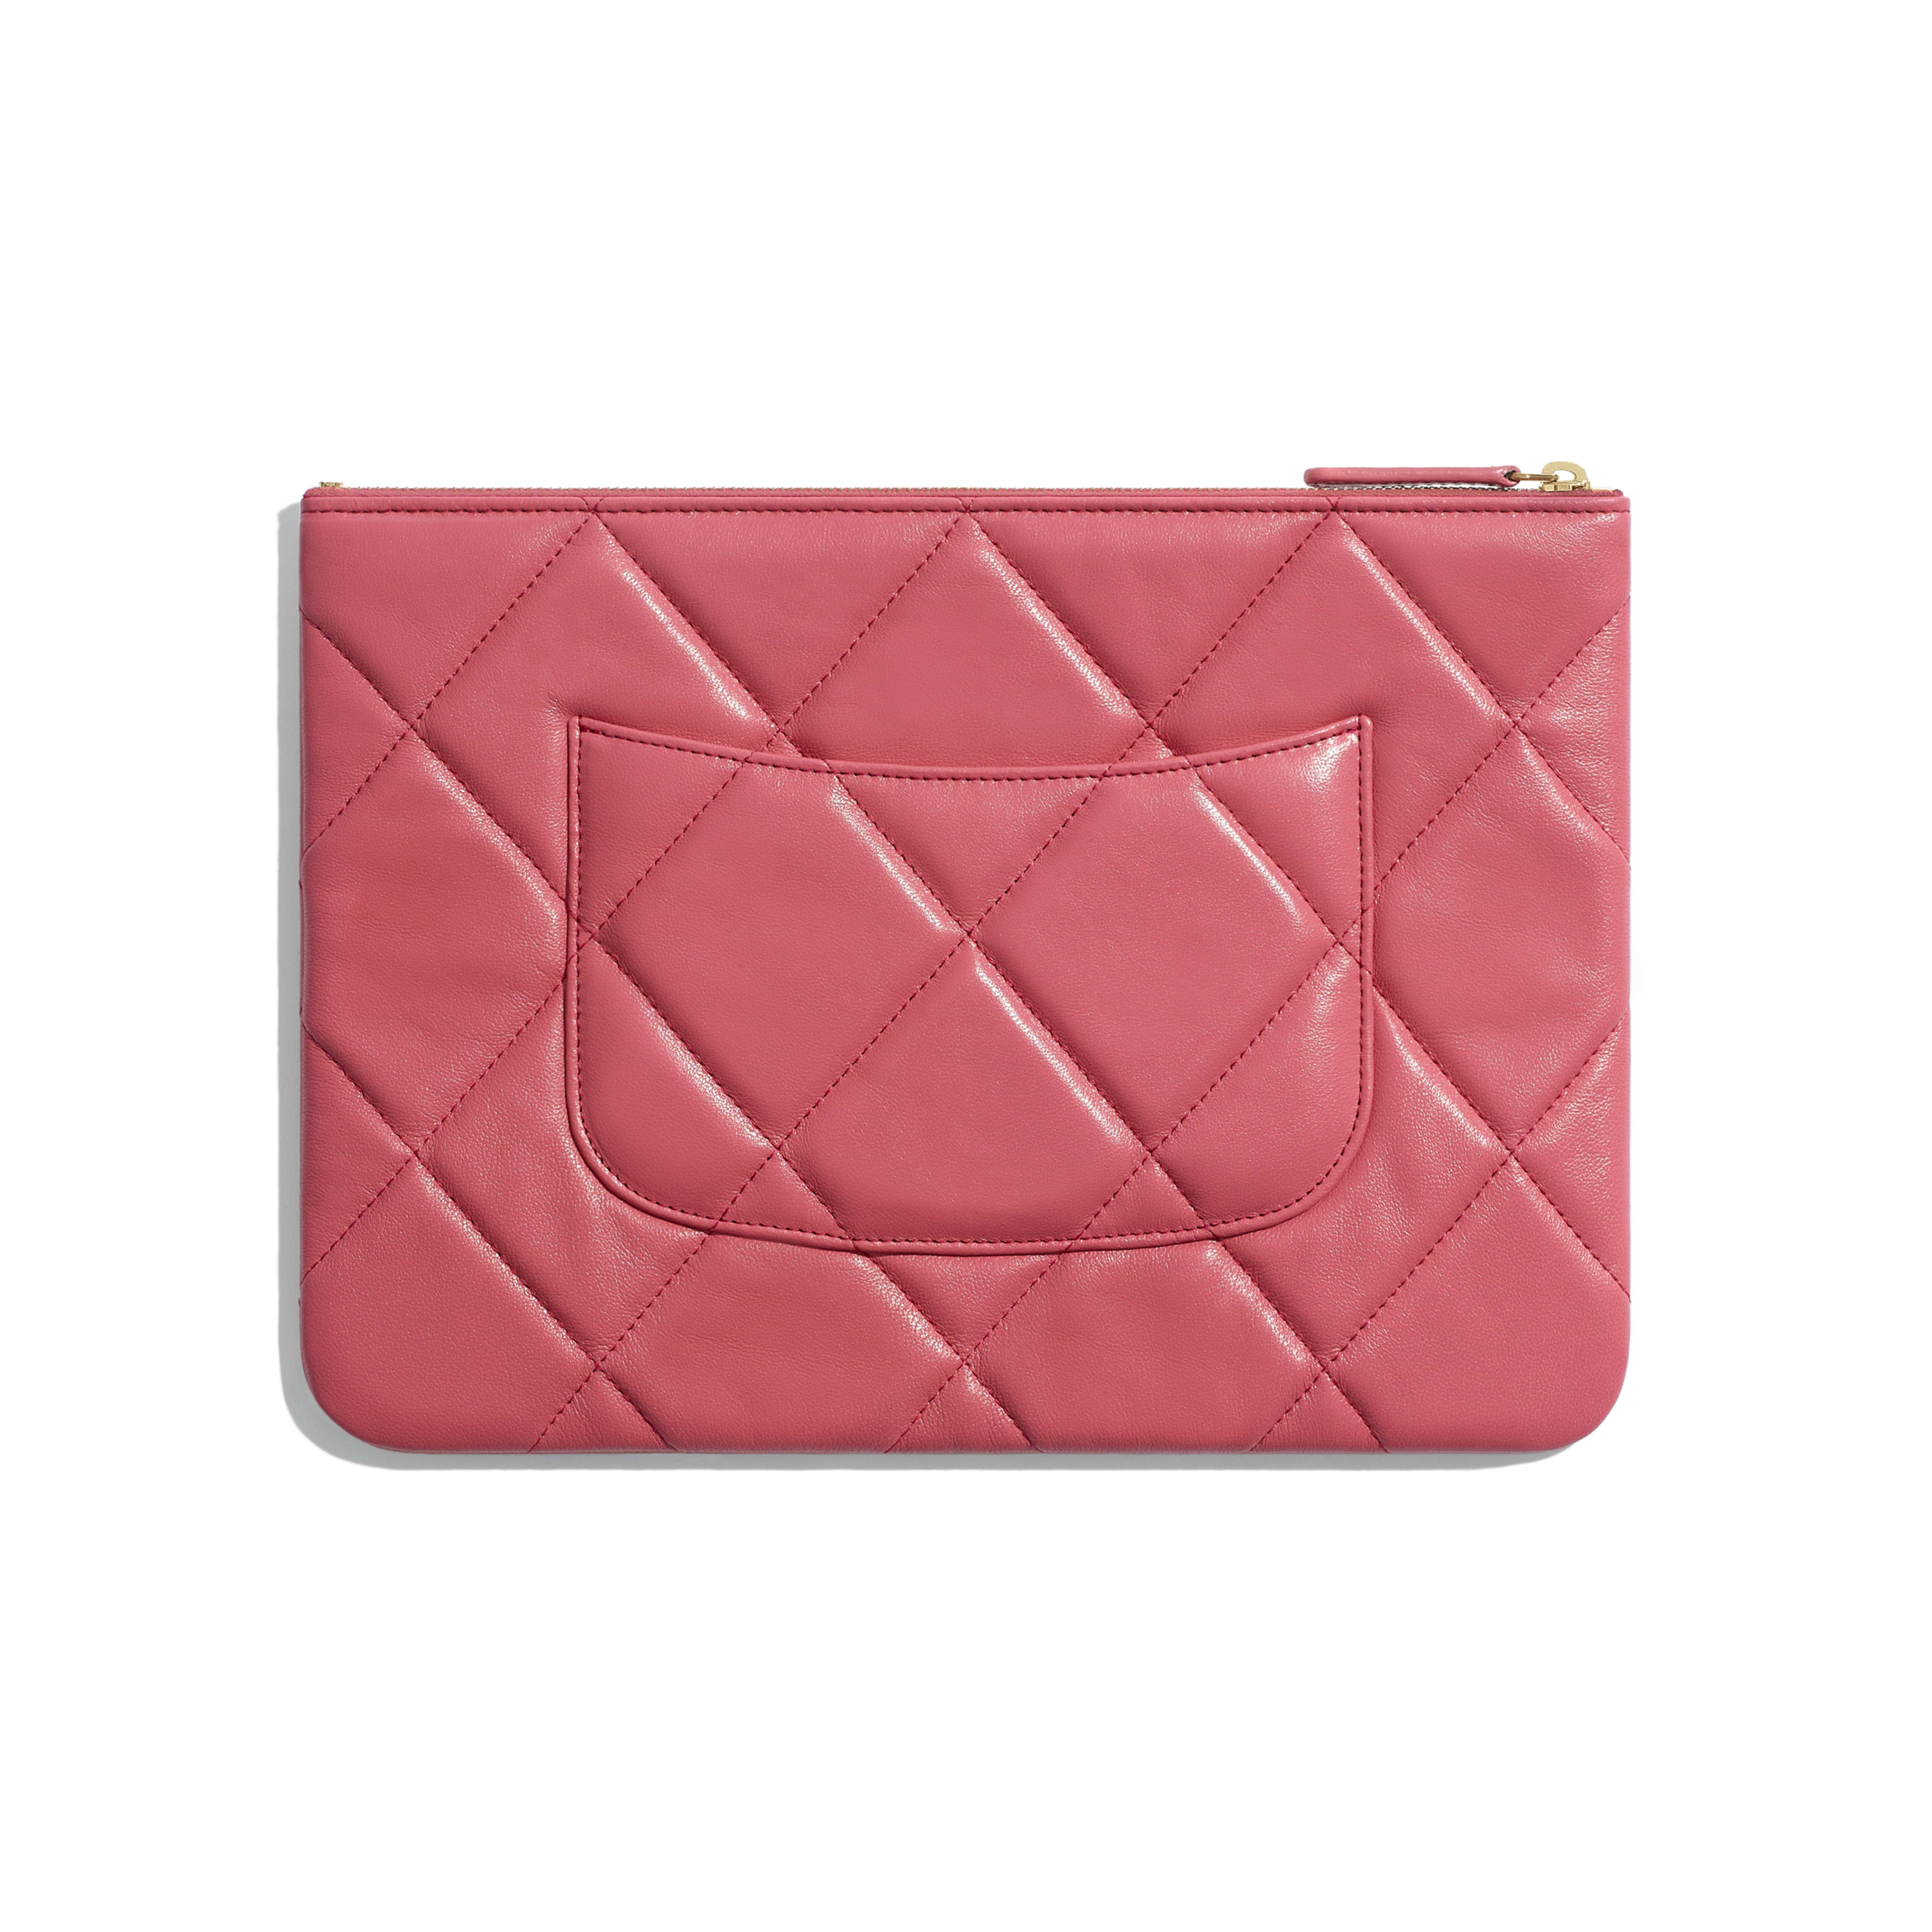 CHANEL 19 Pouch - Pink - Lambskin, Gold-Tone, Silver-Tone & Ruthenium-Finish Metal - Alternative view - see full sized version